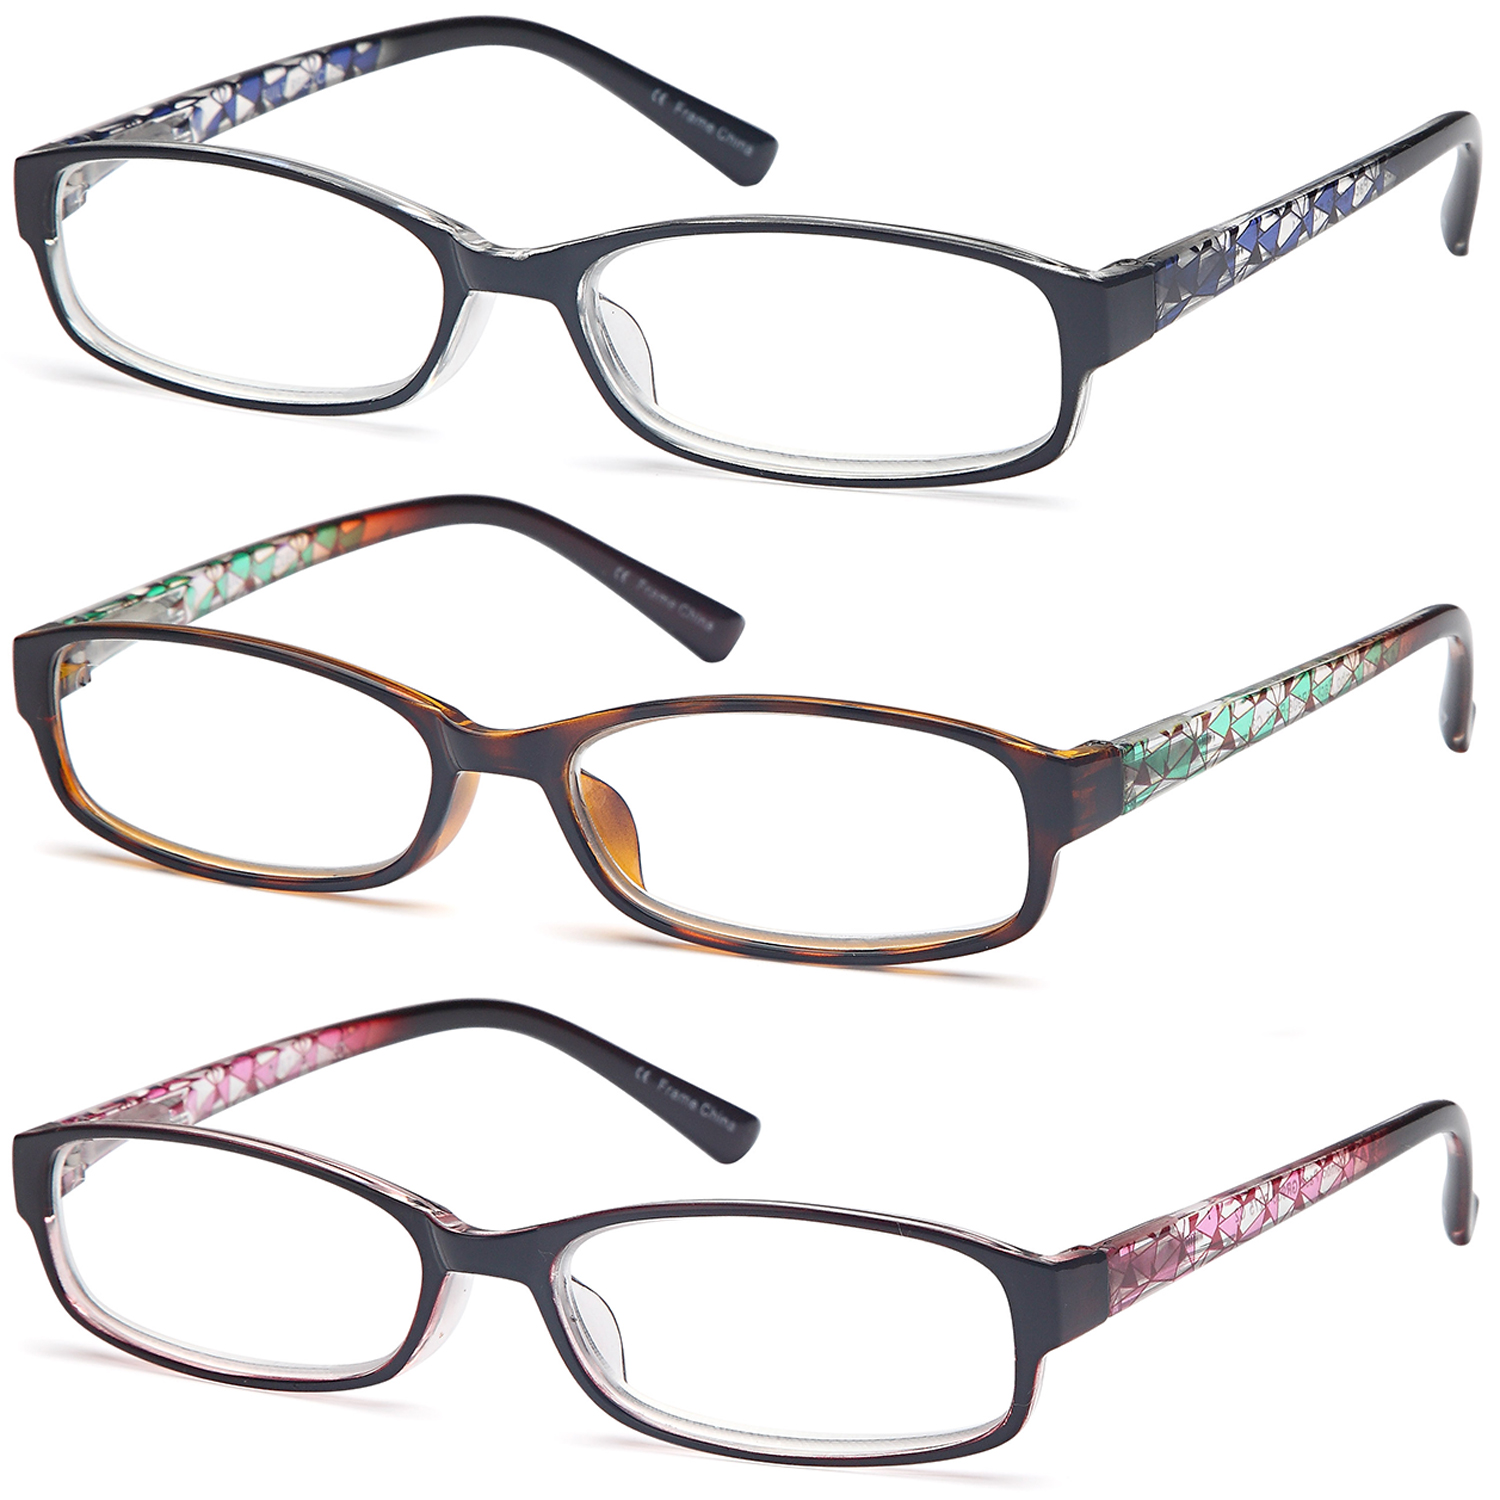 GAMMA RAY Readers 3 Pack of Thin and Elegant Womens Reading Glasses with Beautiful Patterns for Ladies - 1.00x